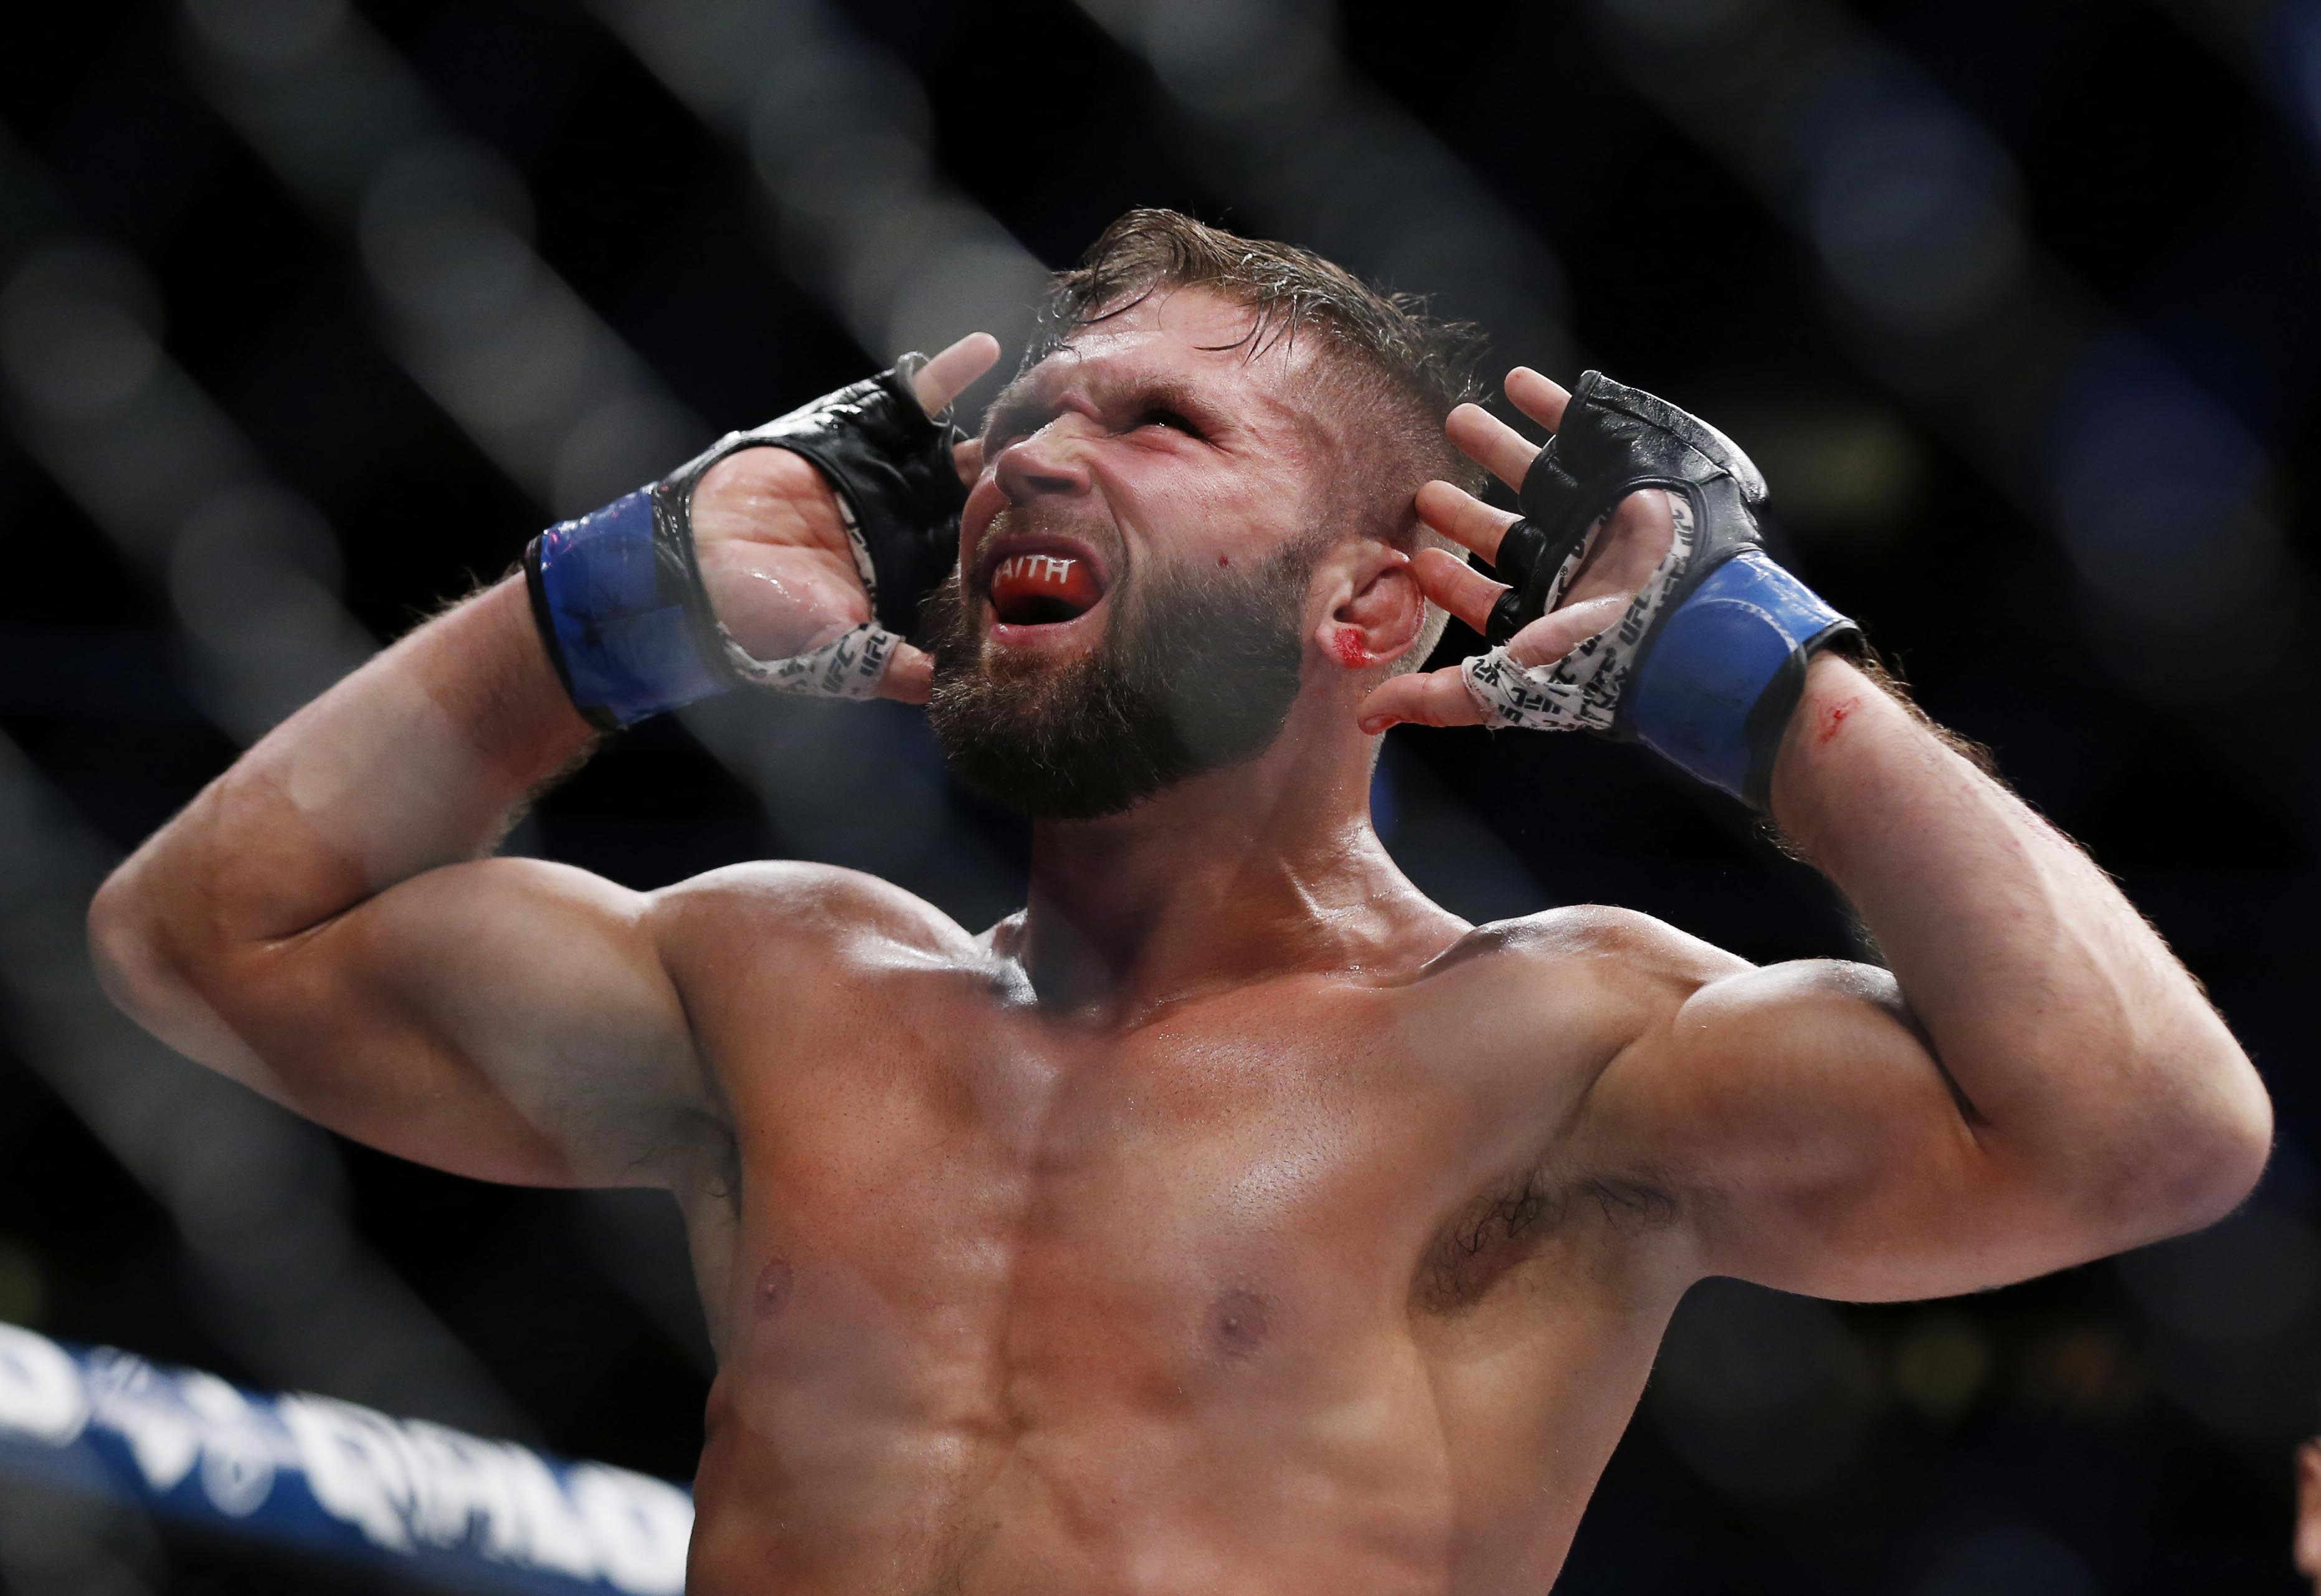 Nov 12, 2016; New York, NY, USA; Jeremy Stephens (blue gloves) reacts during his fight against Frankie Edgar (red gloves) during UFC 205 at Madison Square Garden. Mandatory Credit: Adam Hunger-USA TODAY Sports